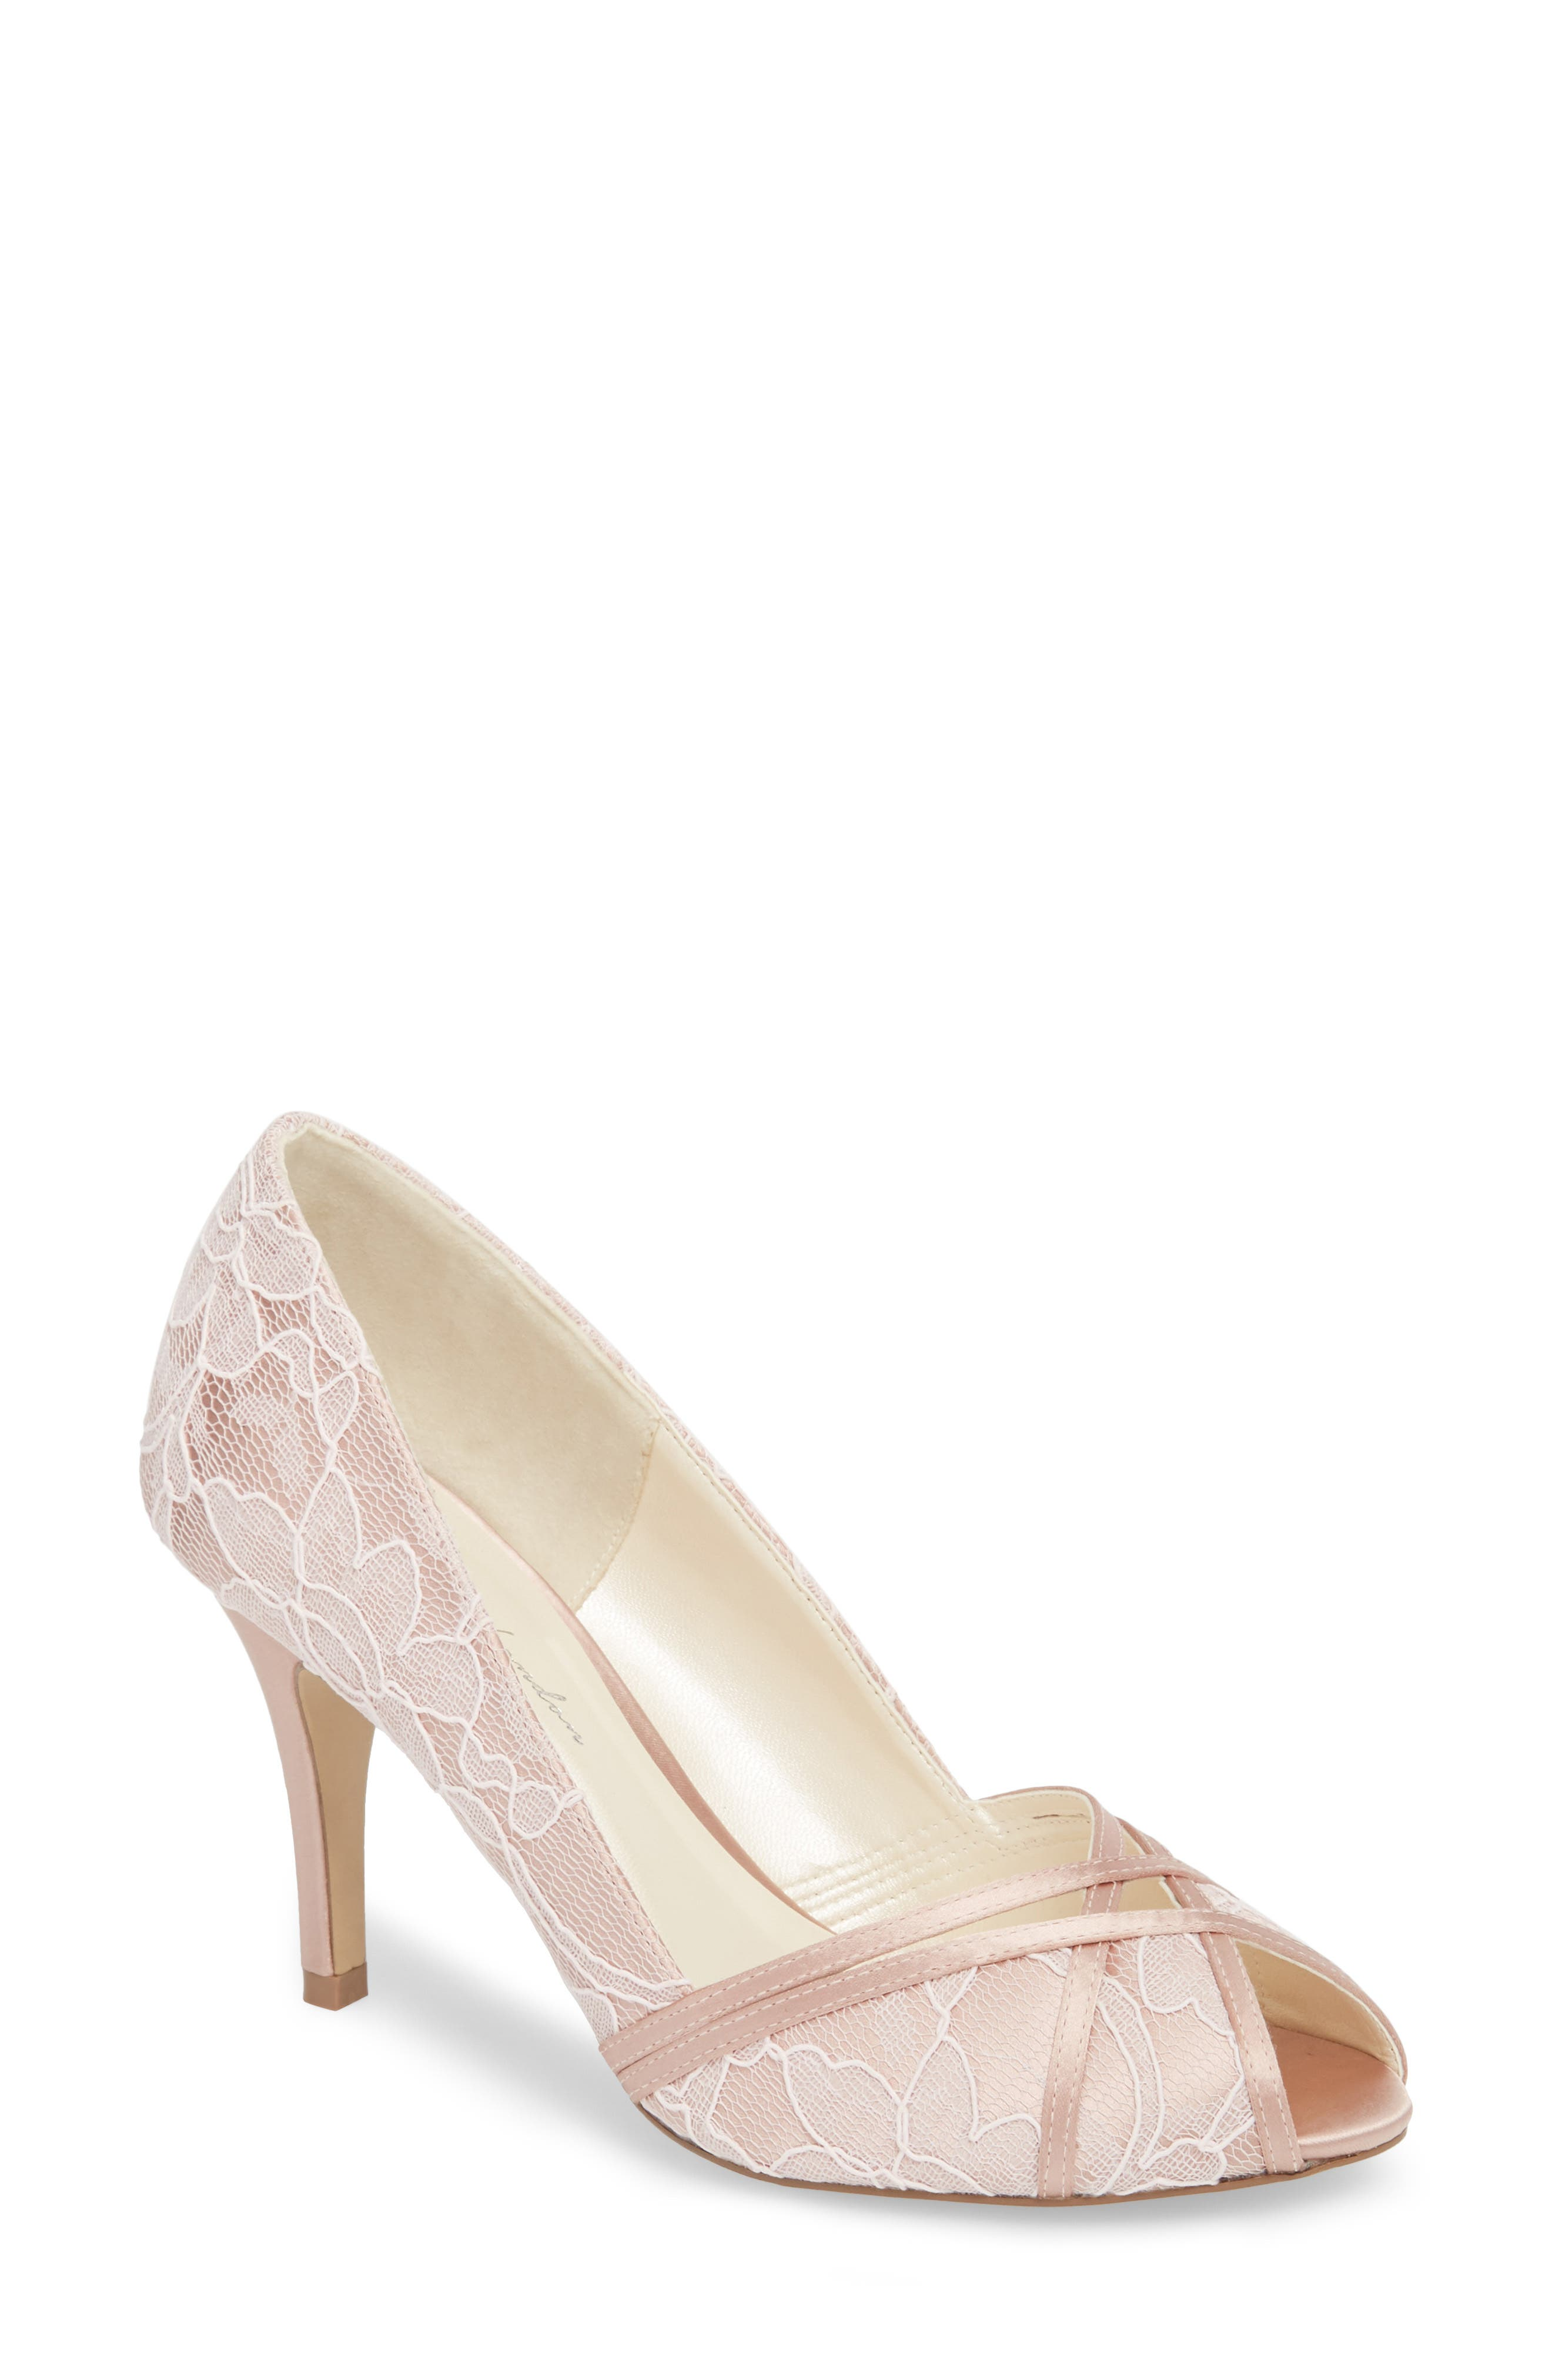 pink paradox london Cherie Embroidered Peep Toe Pump (Women)